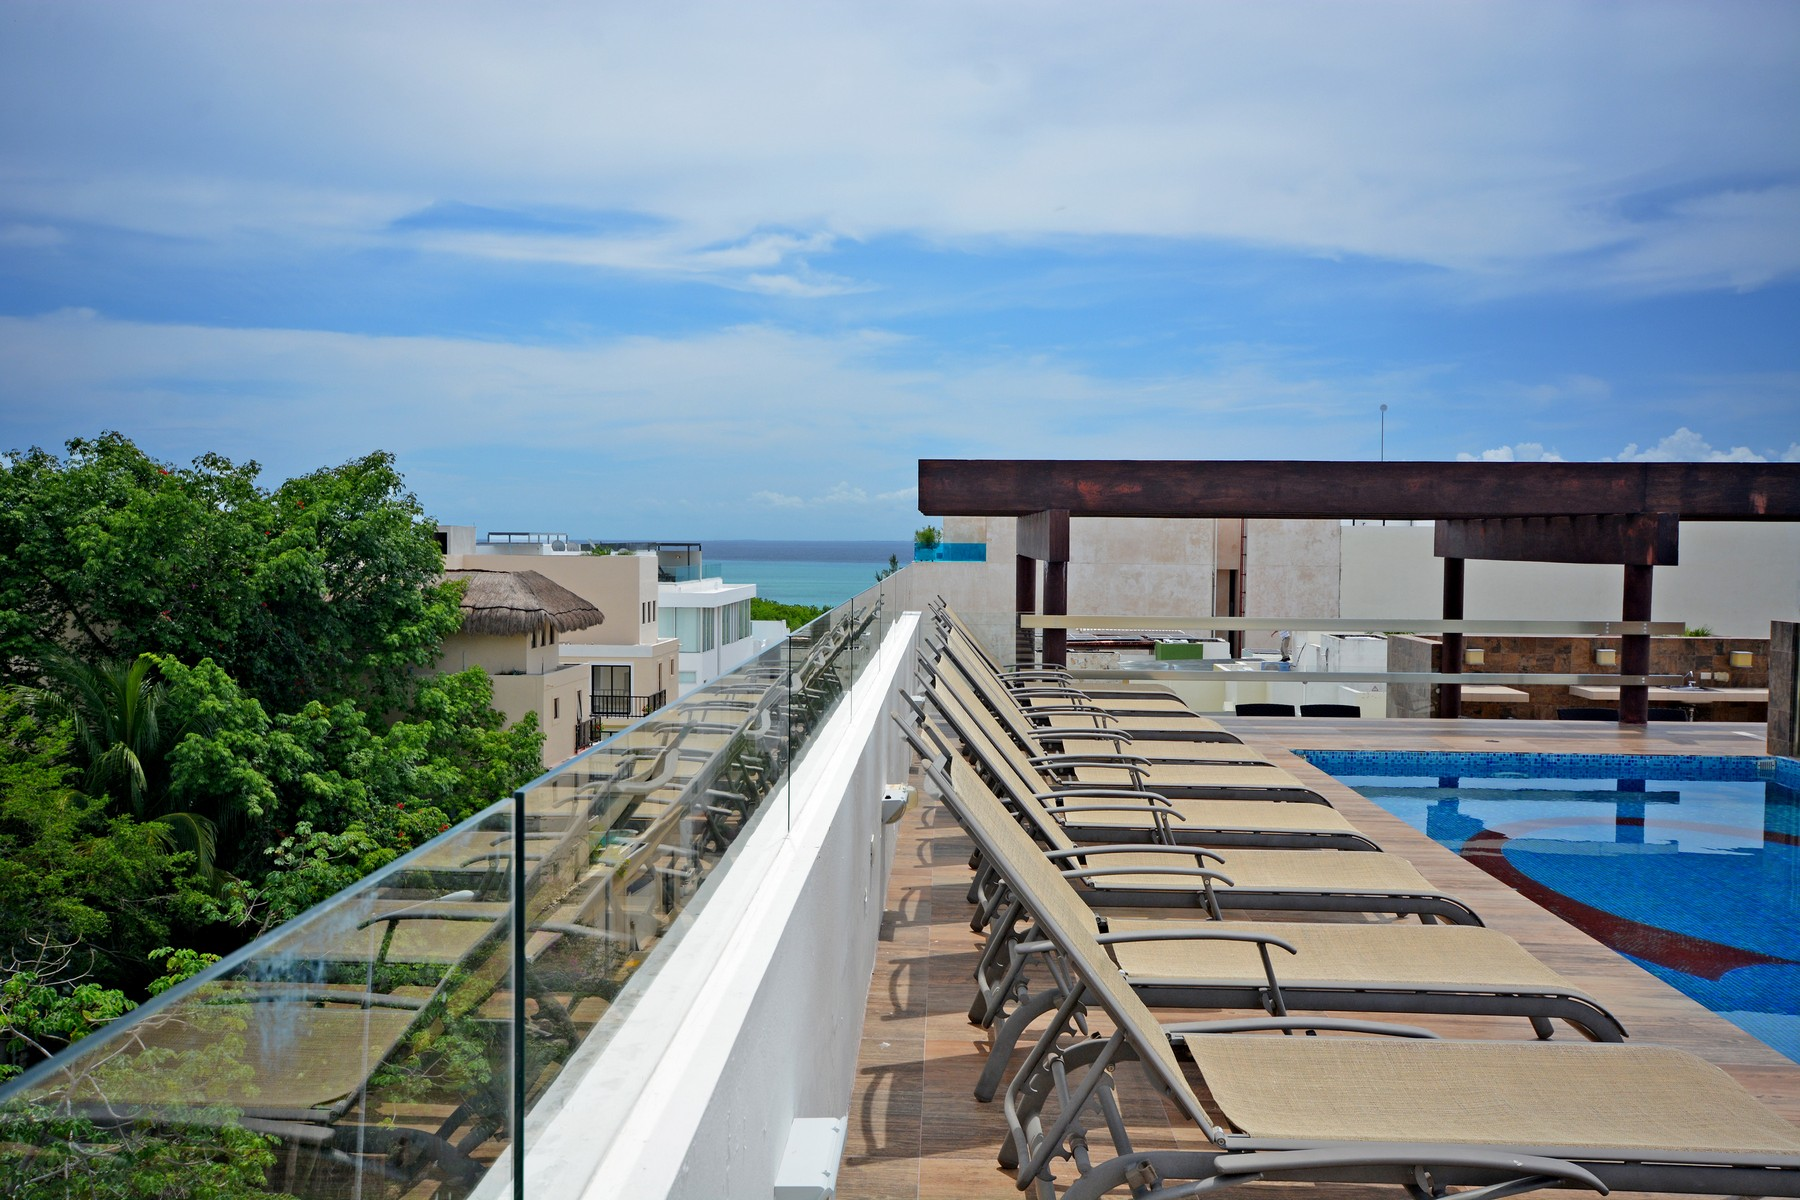 Condominio por un Venta en ESPACIOSO 3 RECÁMARAS A 2 PASOS DE LA PLAYA Gorgeous large 3 bedroom 2 steps from the beach Lot 006, 1st. North Avenue, Mza. 157, between 40th & 42th North streets, Playa Del Carmen, Quintana Roo, 77710 México